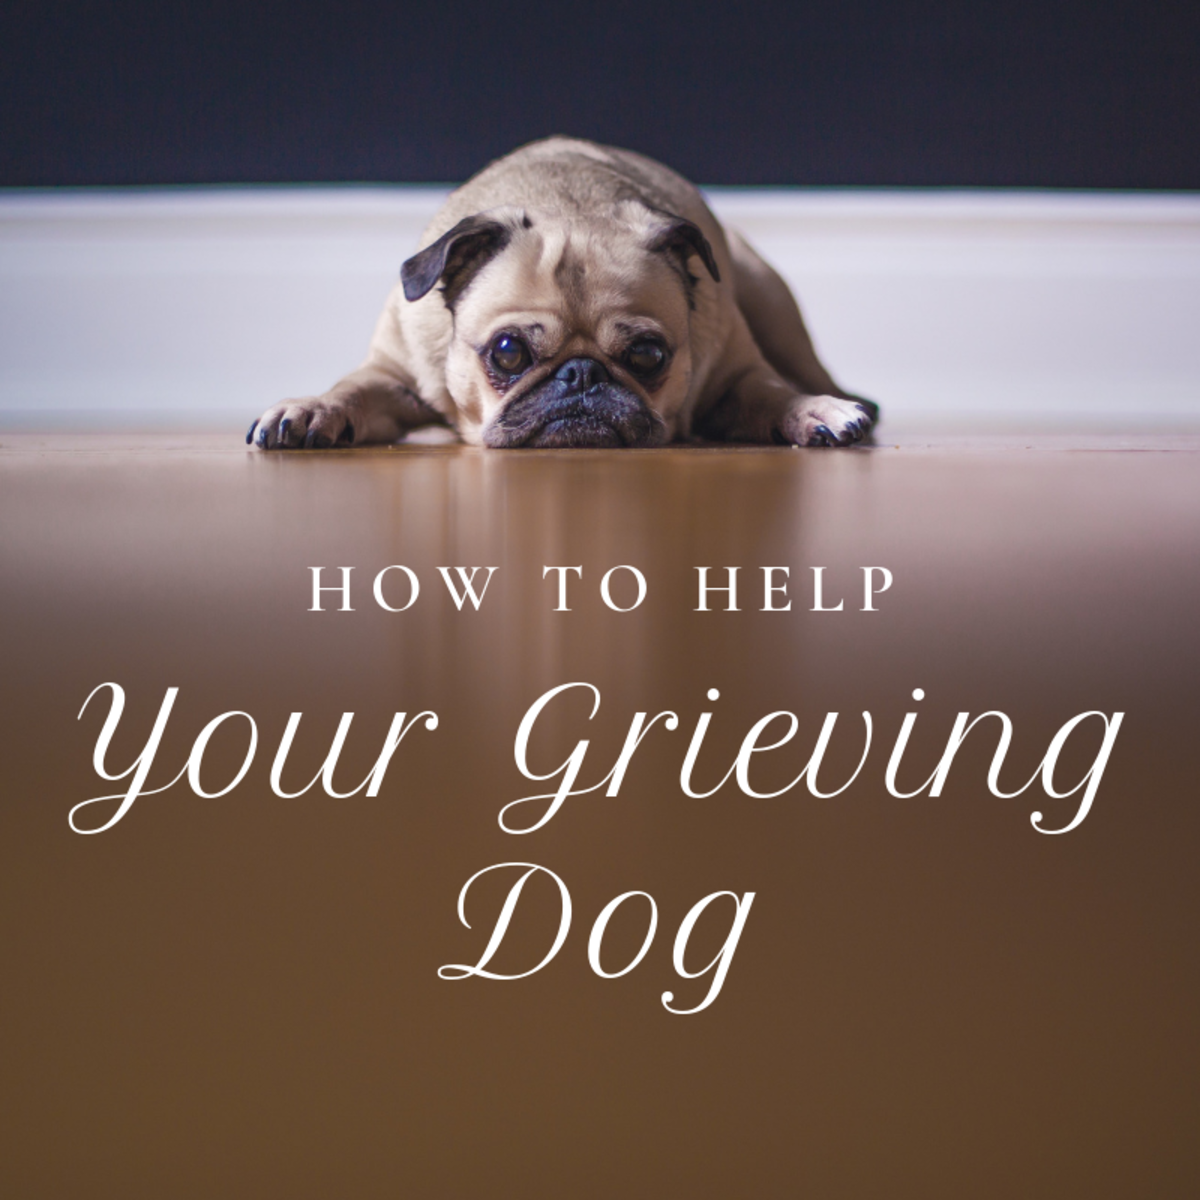 How to Help a Dog That Is Grieving the Loss of Another Dog